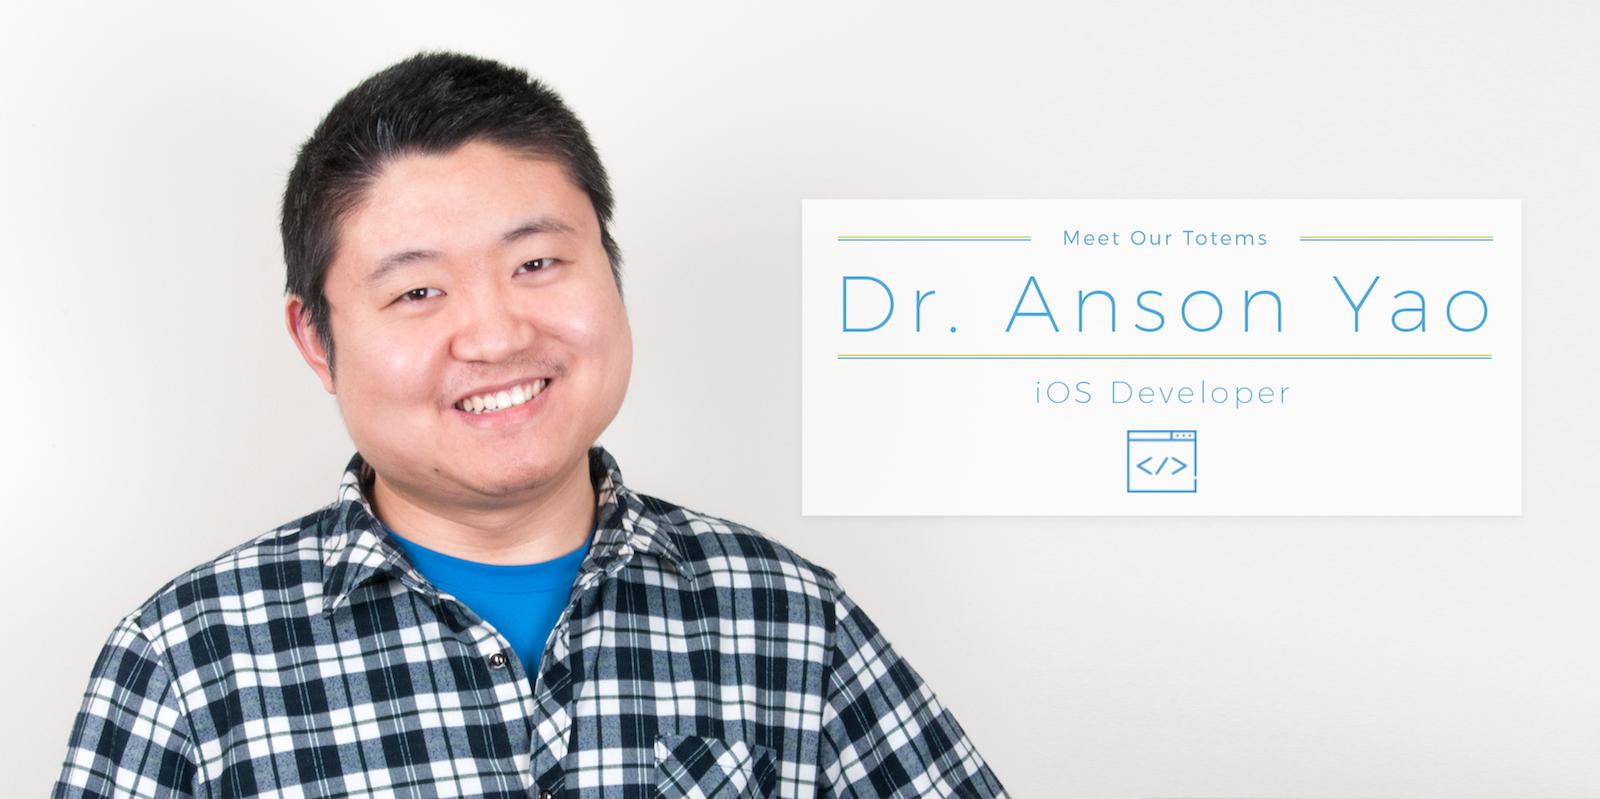 Meet our totems: iOS Developer Anson Yao